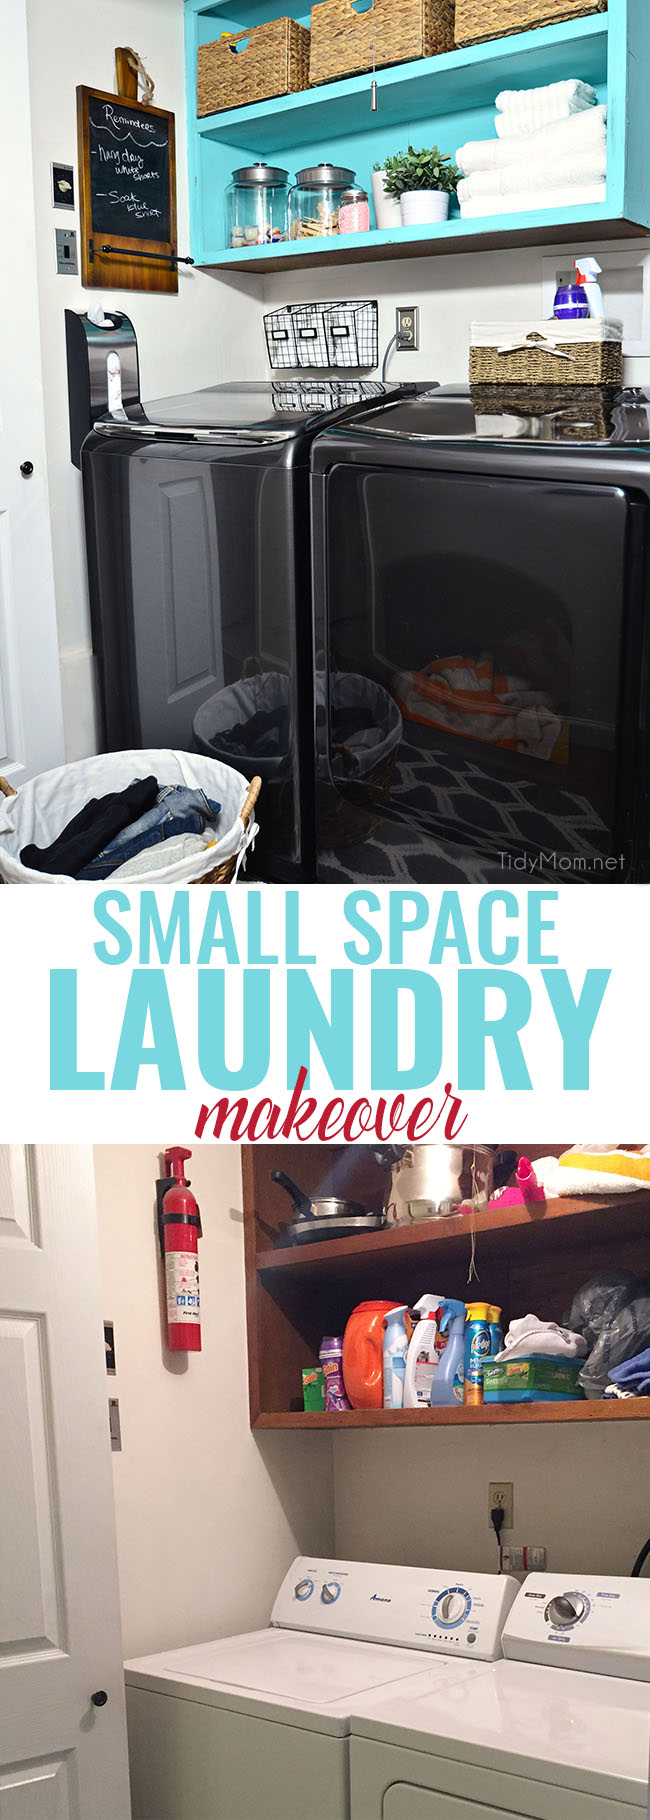 From drap to fab small space laundry makeover! a little fresh paint, organization accessories and Samsung activewash Washer and Dryer give this small laundry closet a fun facelift! A real laundry room with practical ideas at TidyMom.net